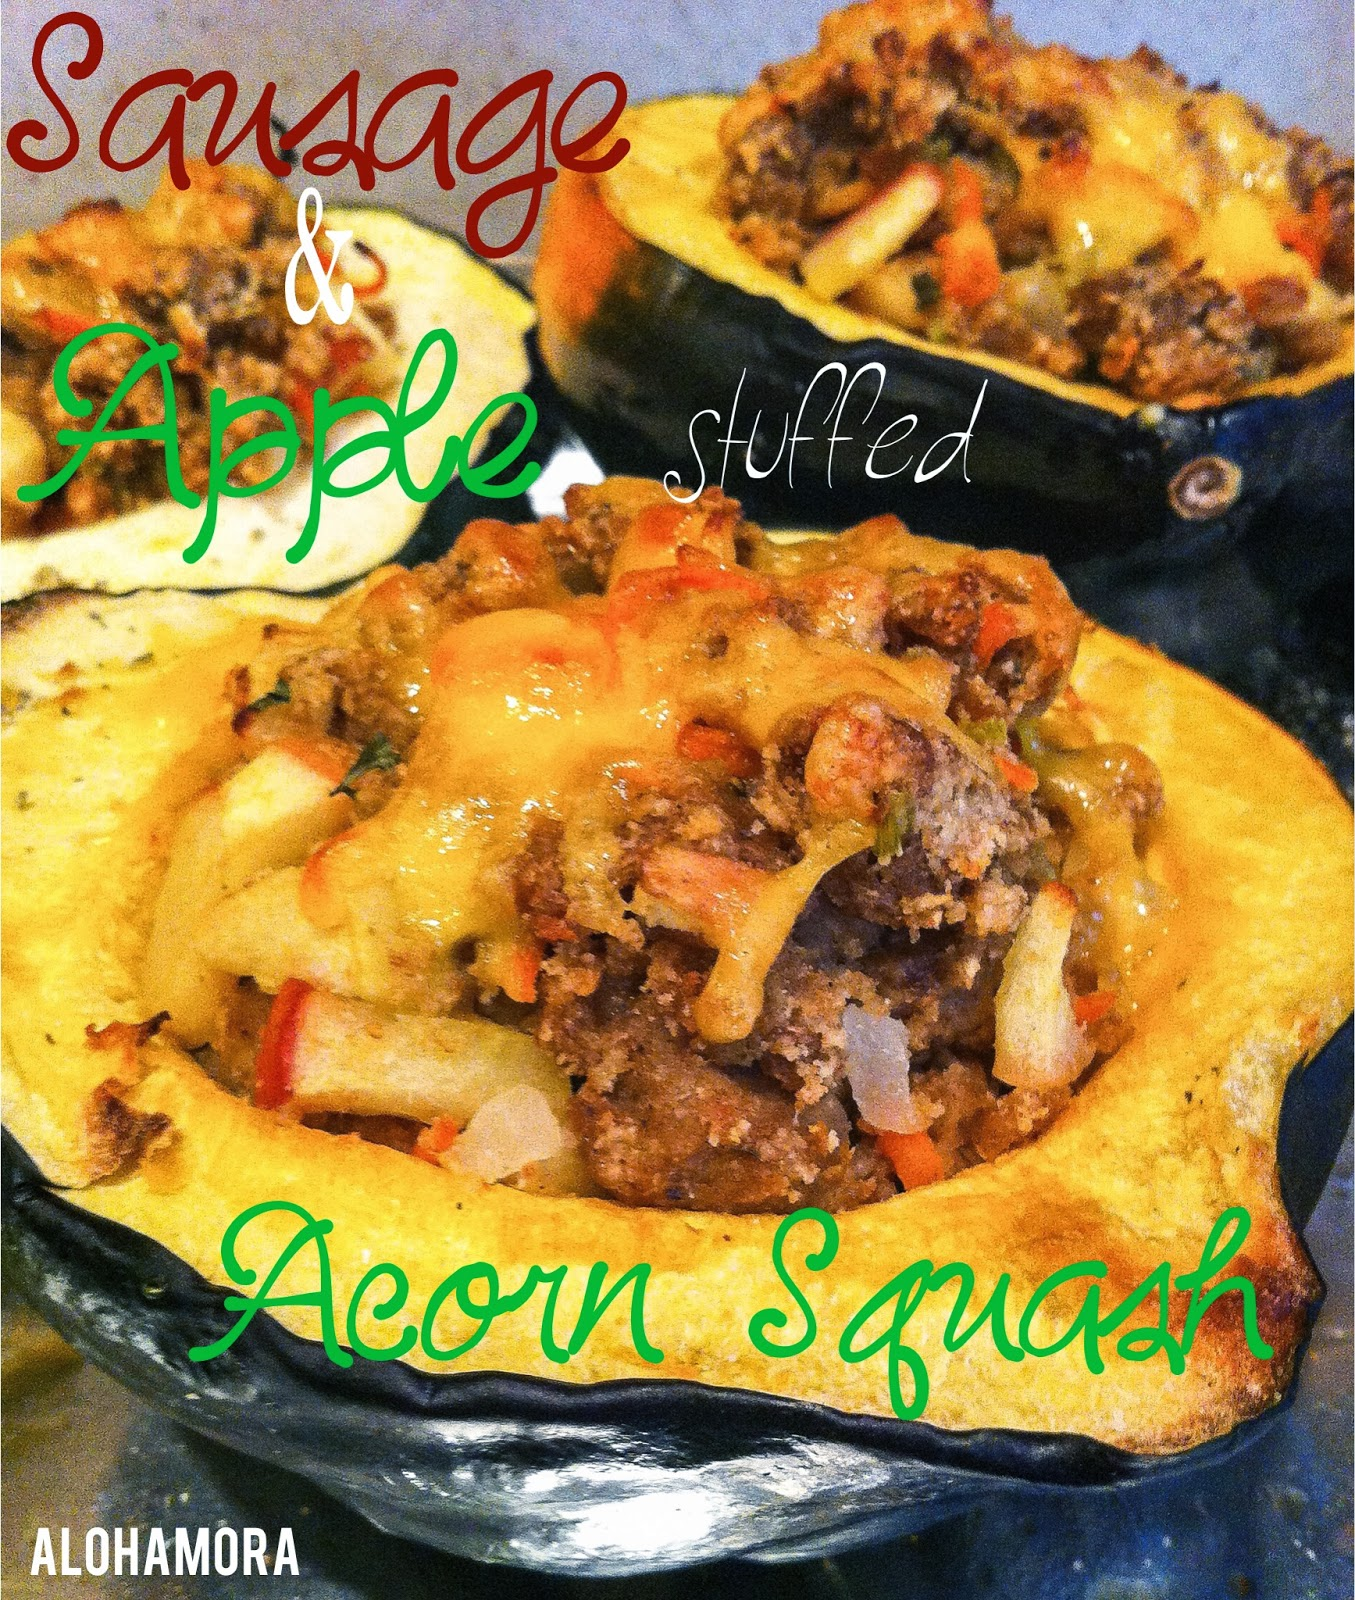 Sausage and Apple Stuffed Acorn Squash- and healthy dinner with loads of flavor and a secret sausage. Alohamora Open a Book http://alohamoraopenabook.blogspot.com/